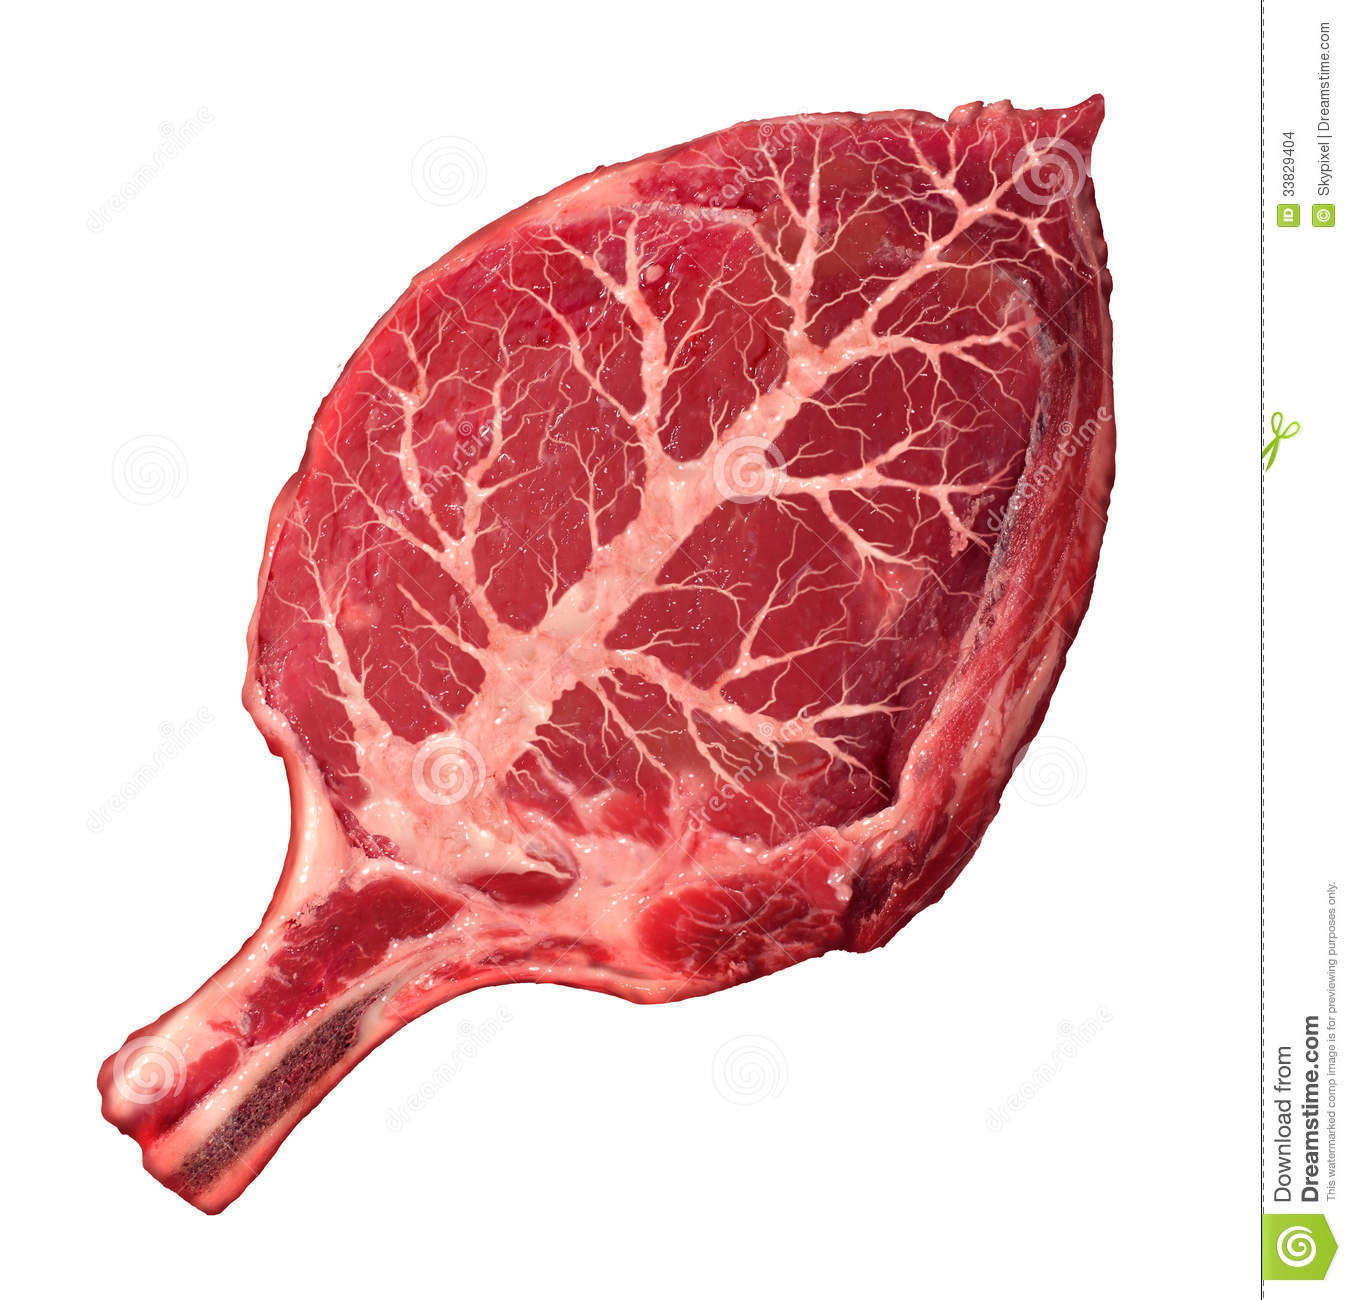 Organic meat and natural food as a raw steak in the shape of a green